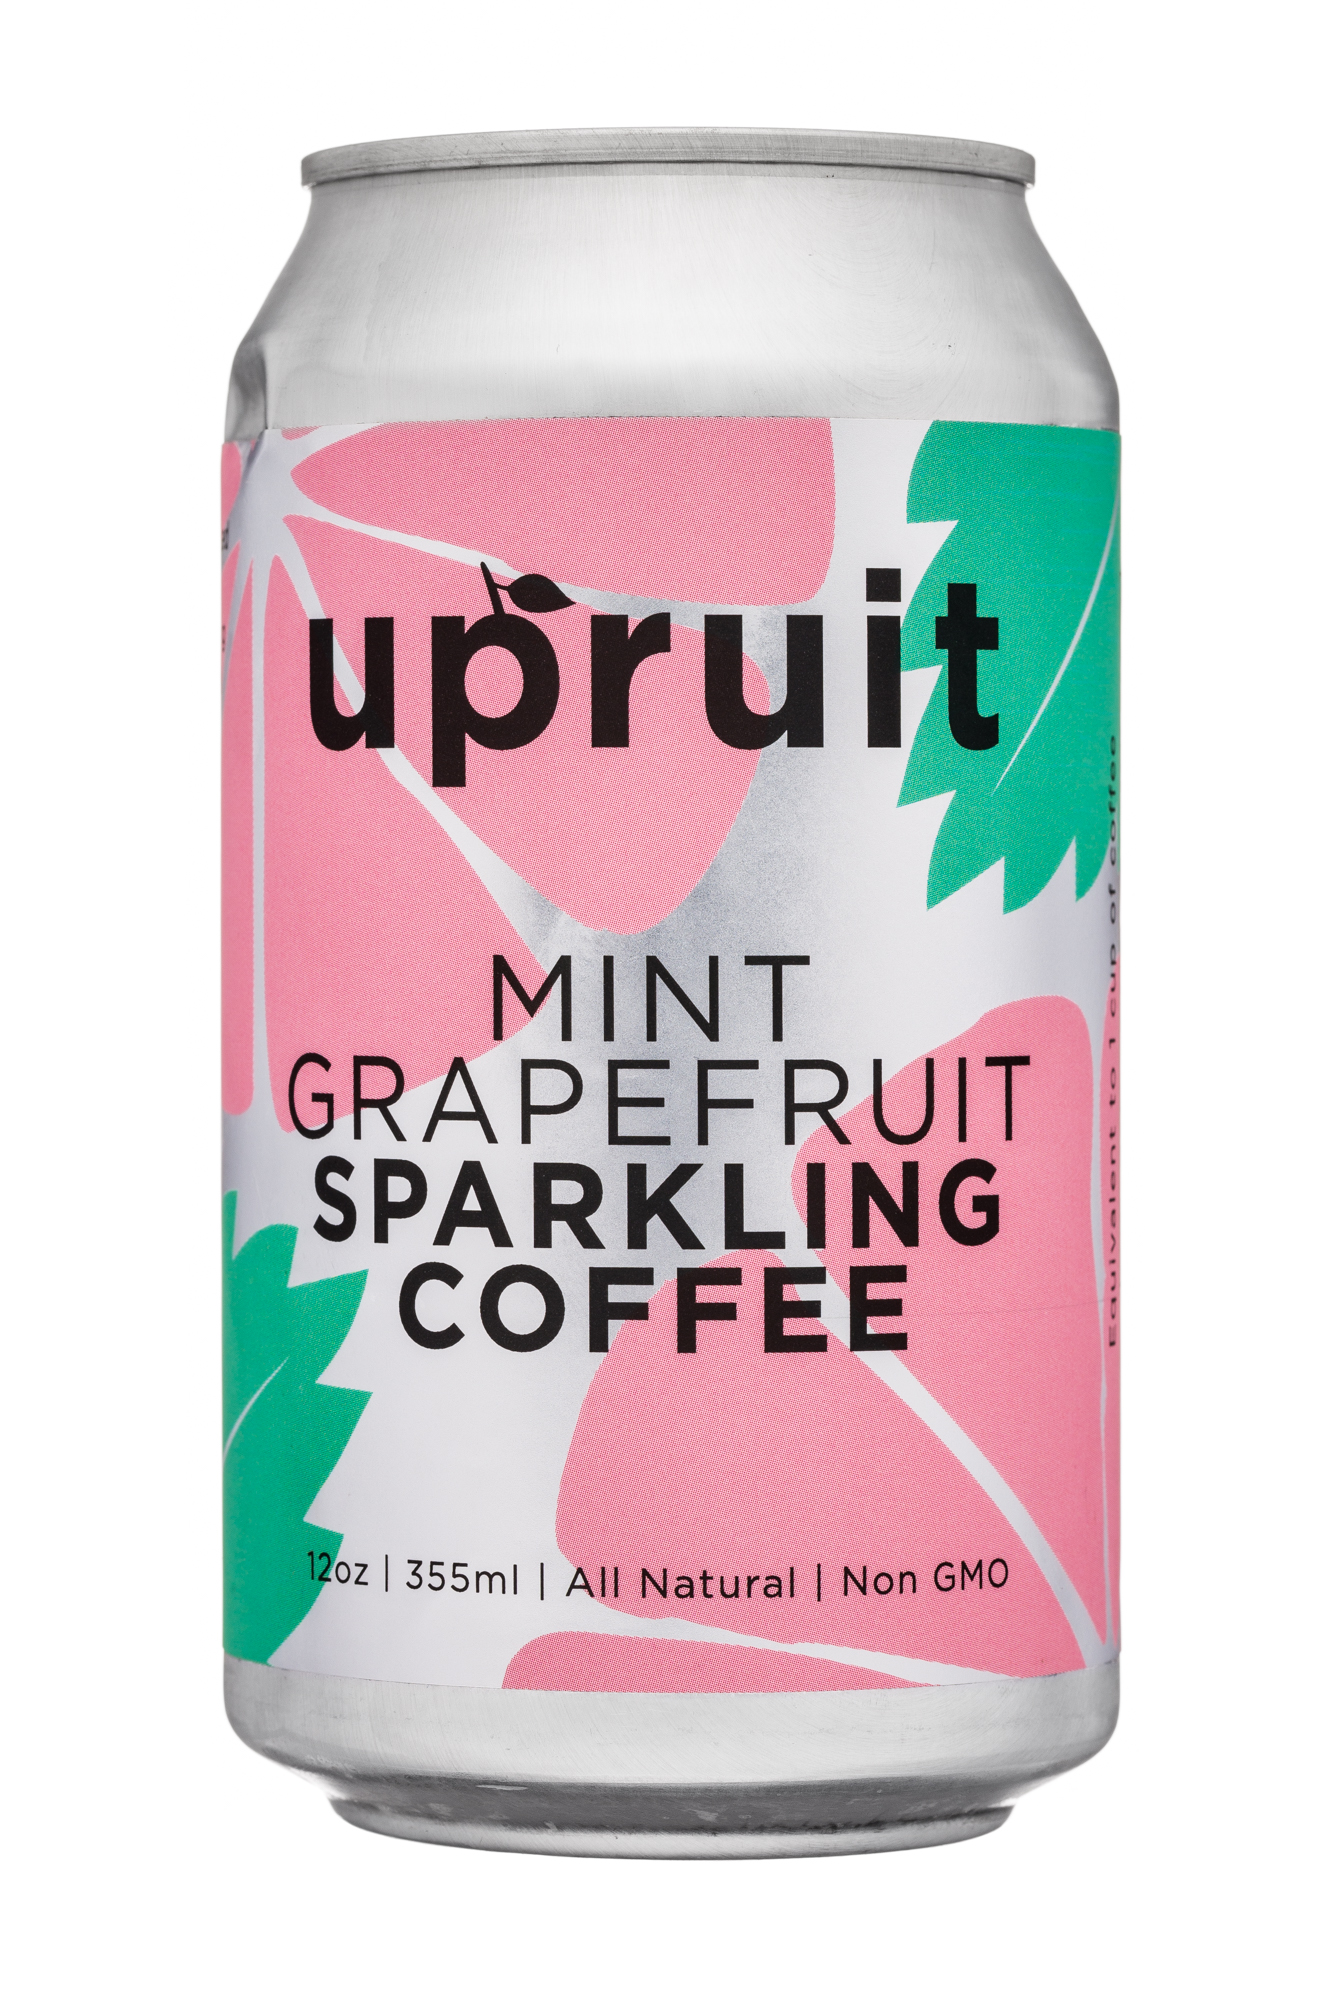 Sparkling Mint Grapefruit Cold-Brew Coffee